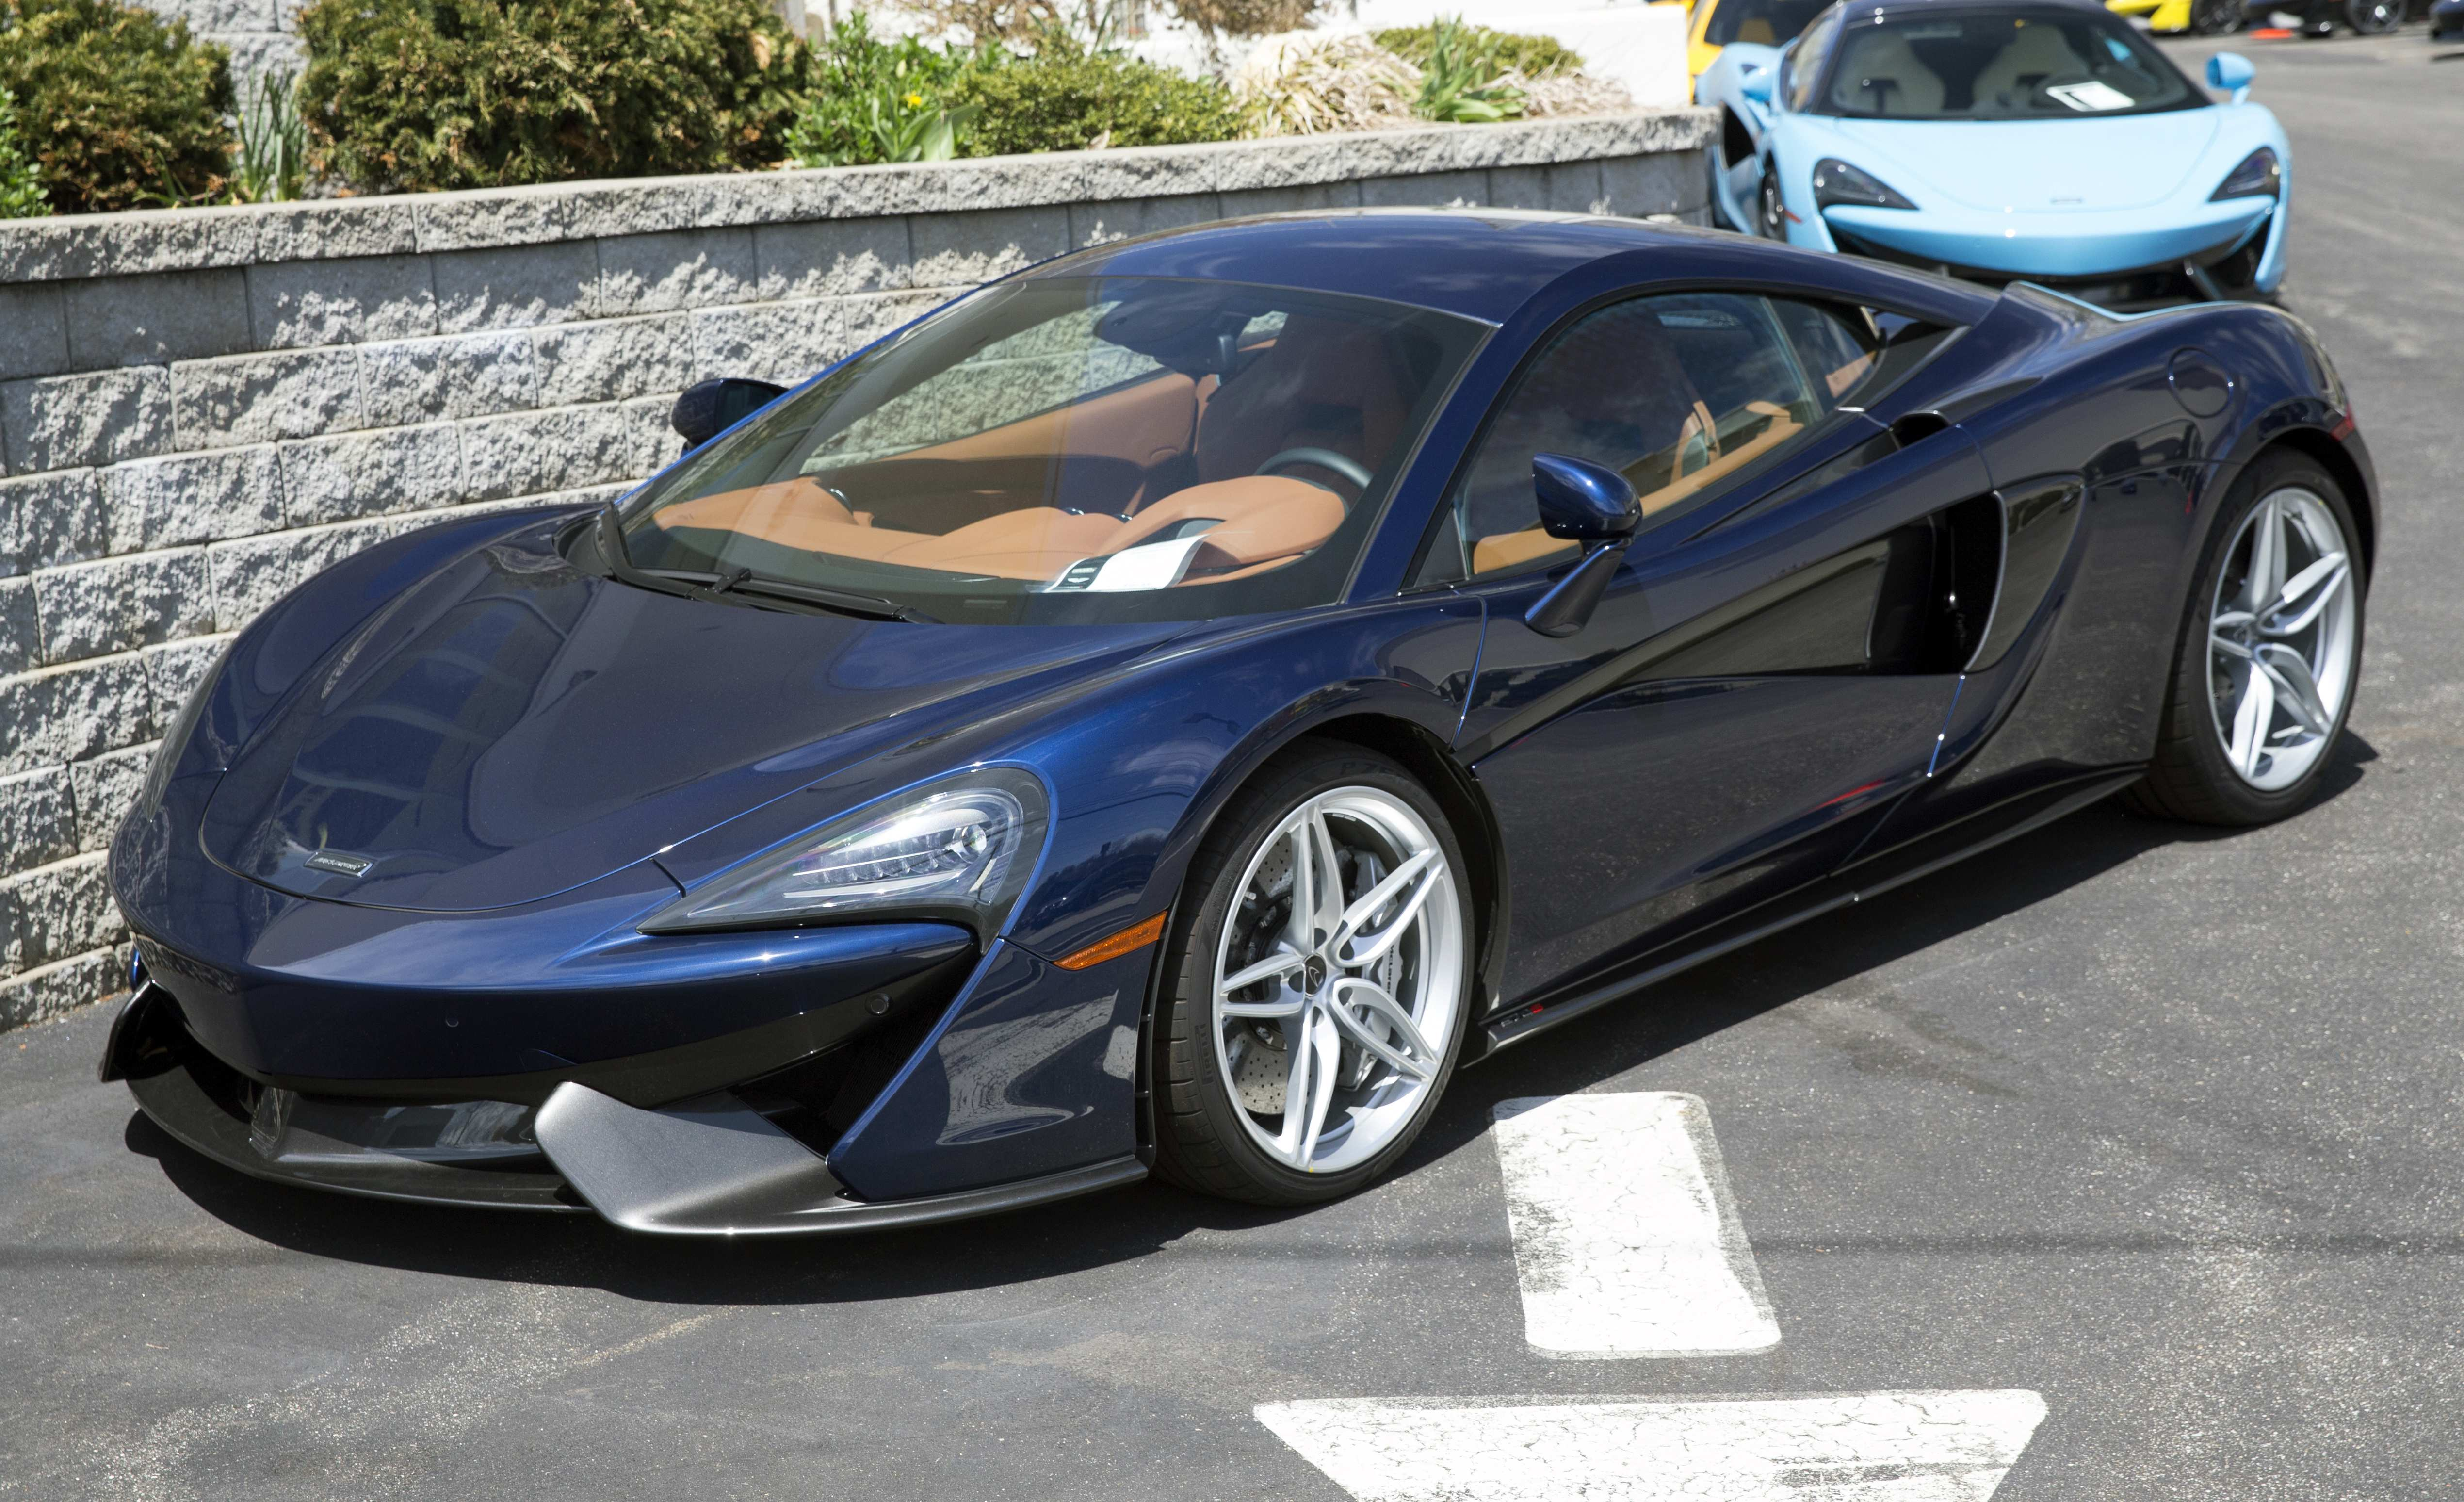 82 The 2020 Mclaren 570S First Drive for 2020 Mclaren 570S